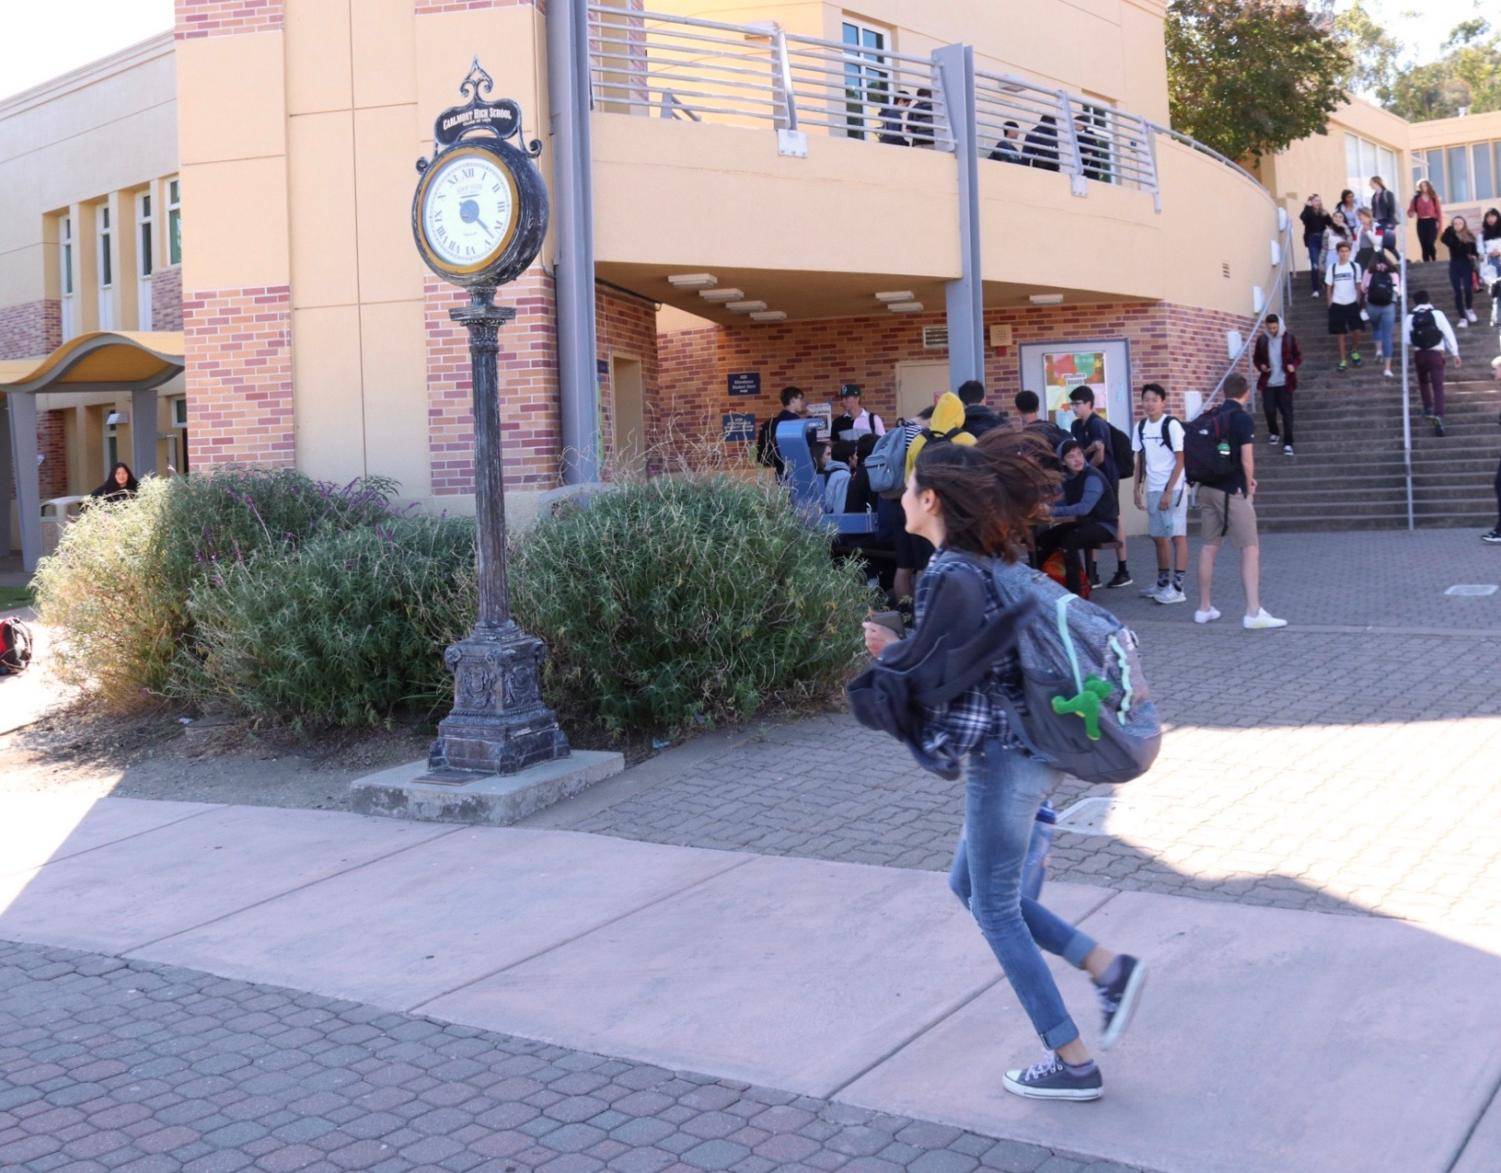 A student rushes to class as the one-minute bell rings.